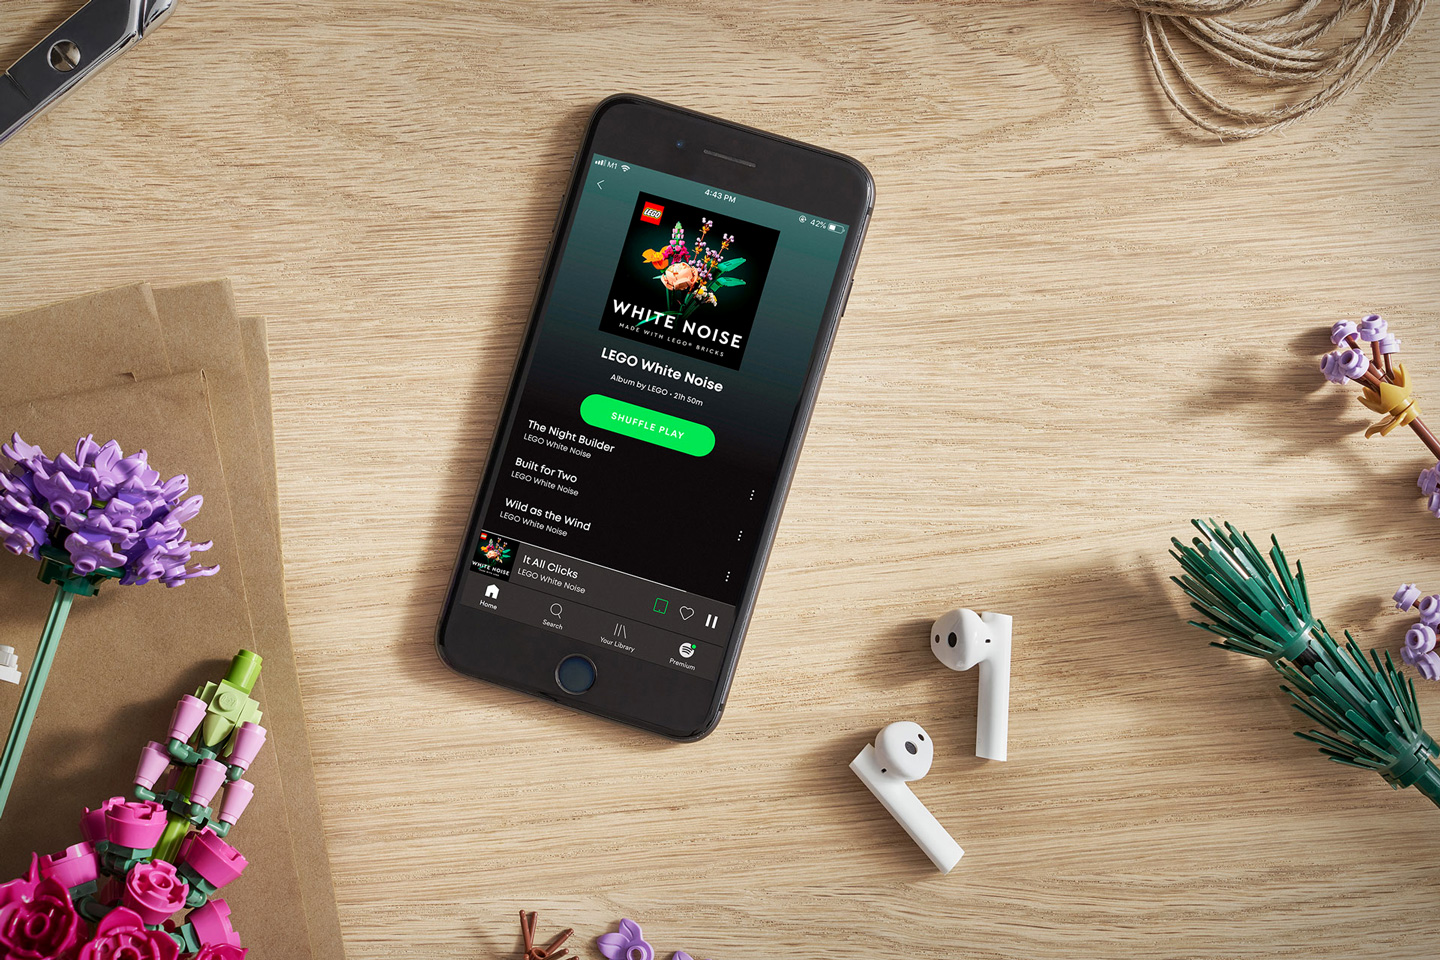 LEGO just dropped a Spotify album… and it's filled with hours of soothing ASMR soundtracks made using LEGO bricks